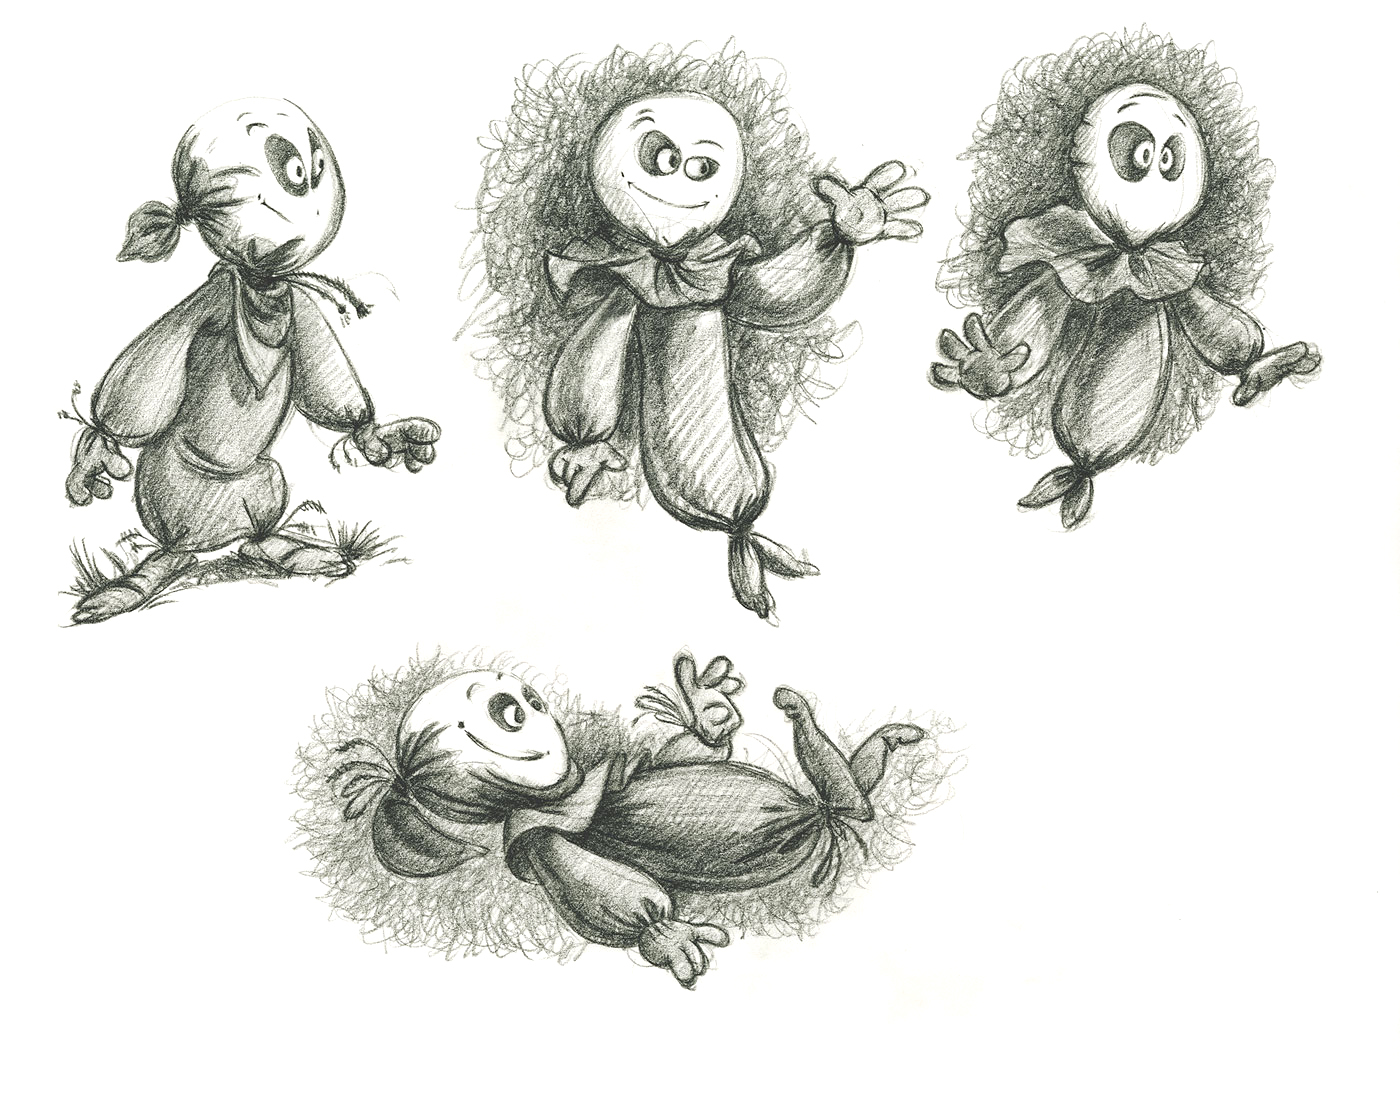 Spooky Ghosts - Book Illustration - concept art